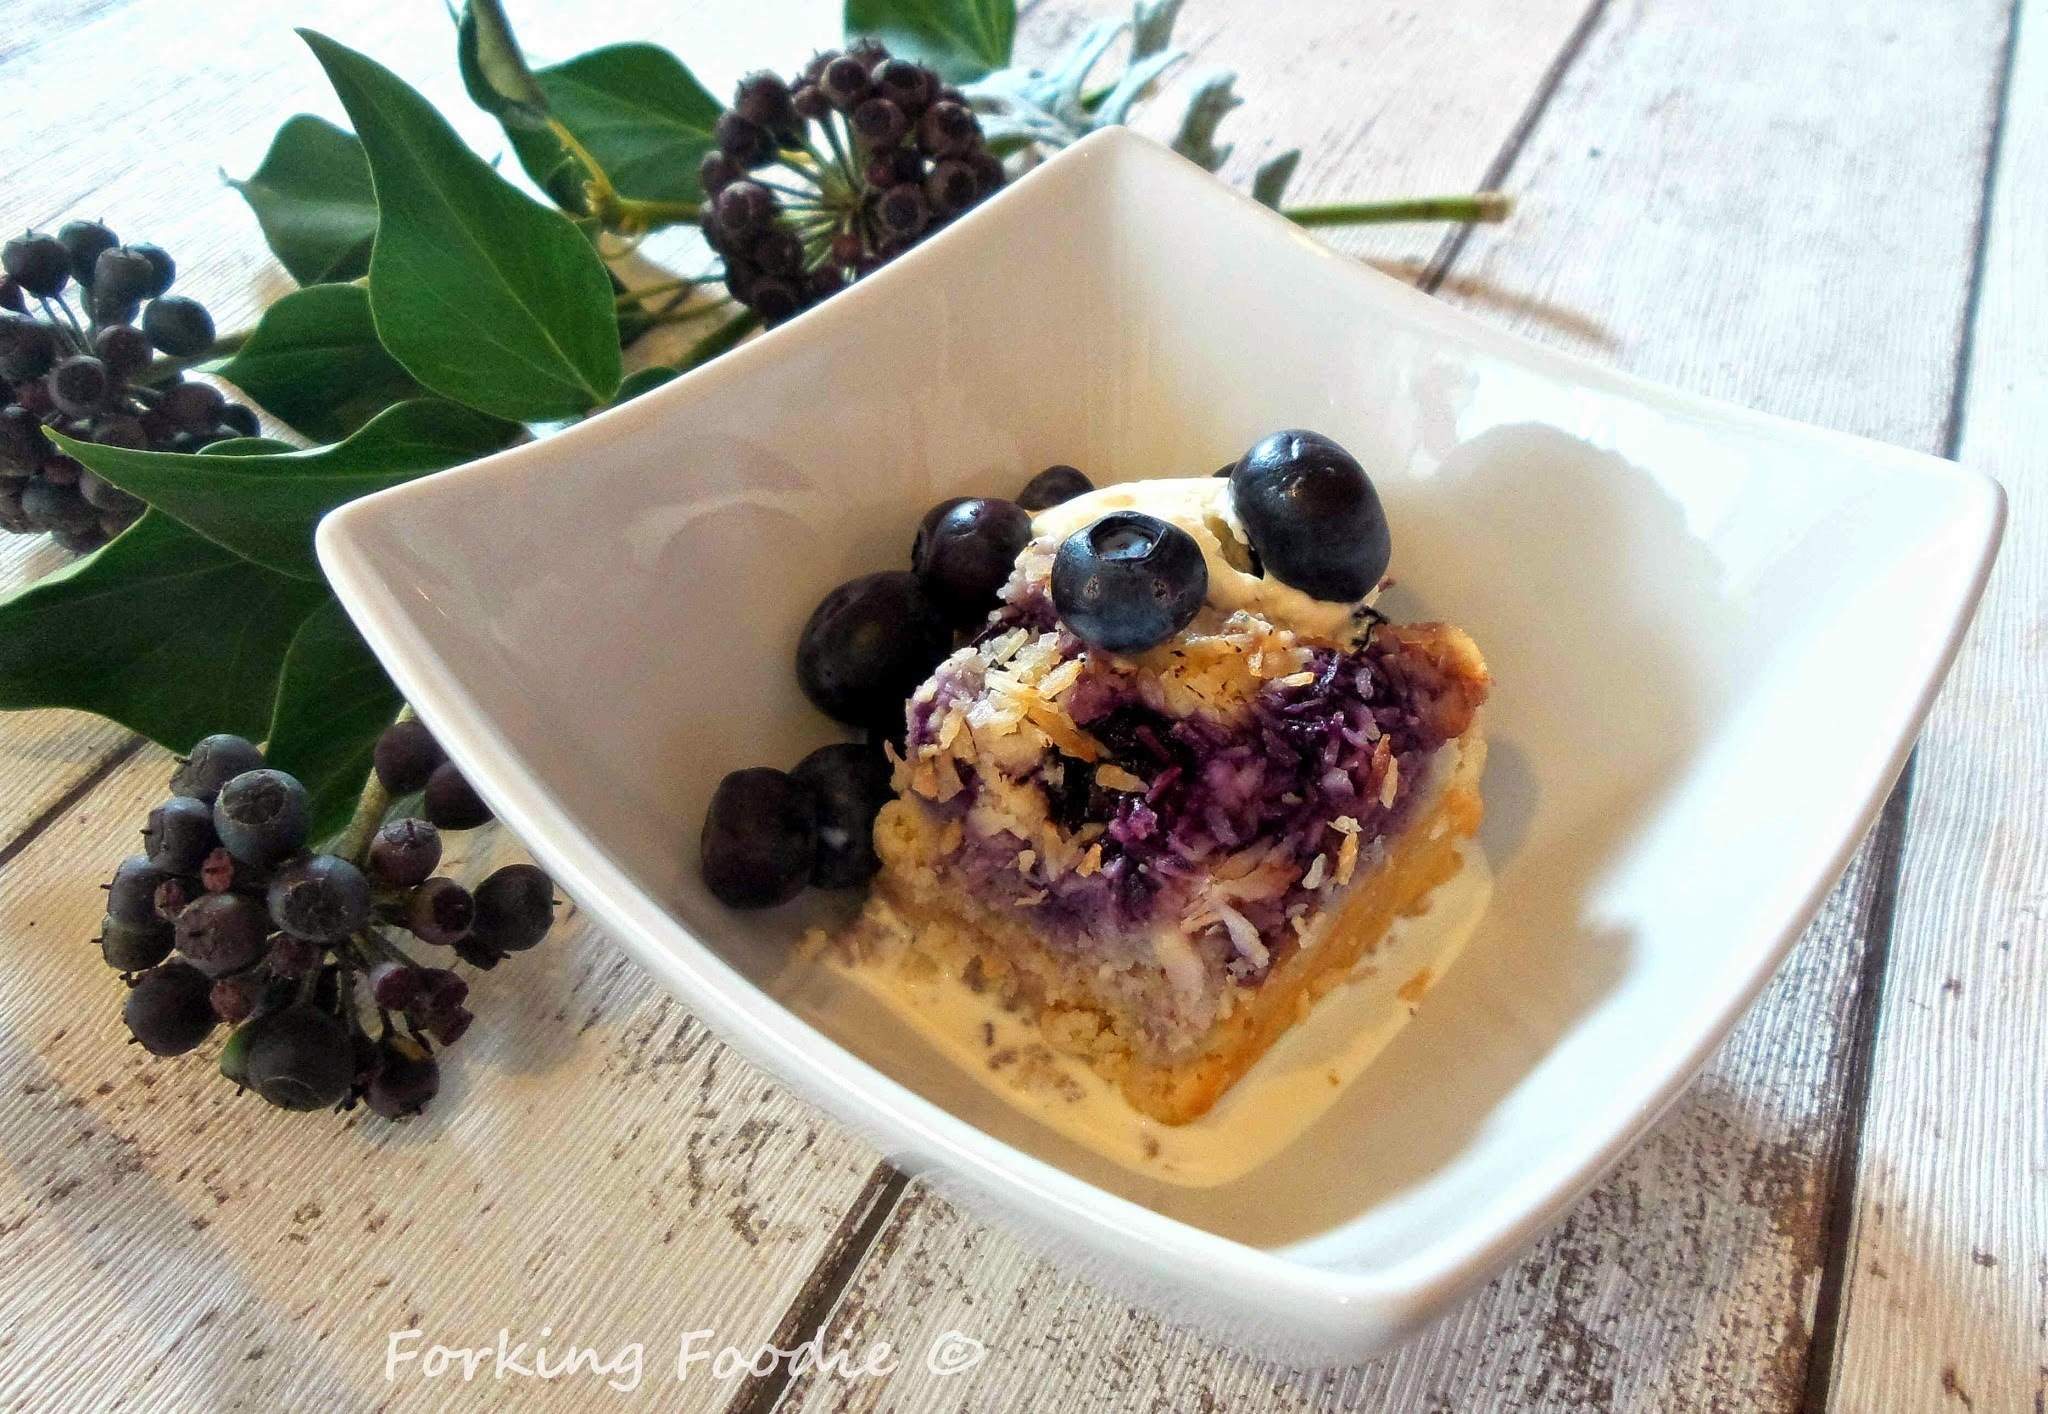 Blueberry, Lime and Coconut Cloud Pudding - Grain, Gluten and Dairy Free (includes Thermomix instructions)